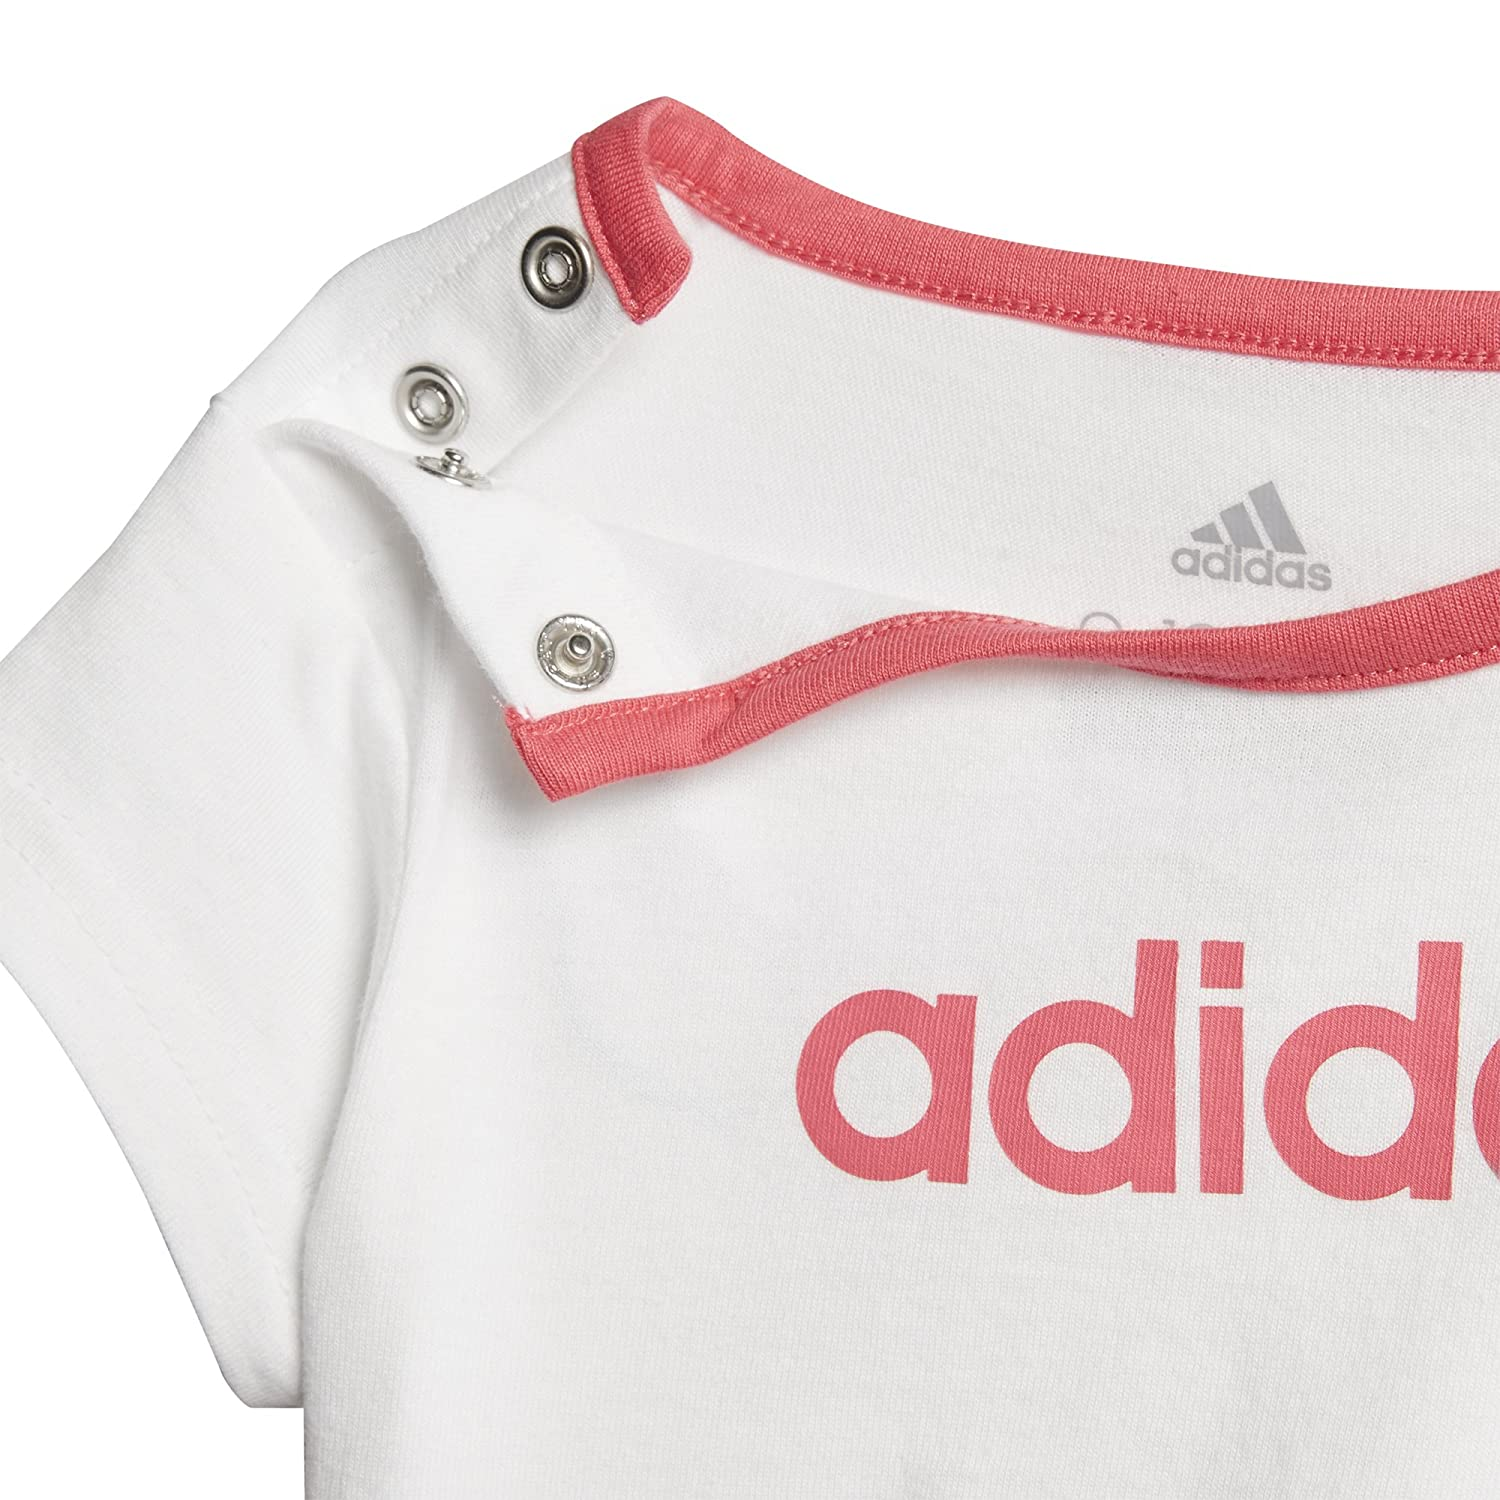 adidas Infant Girls Summer Easy Set, White/Chalk Pink, 2T adidas Canada Limited Parent Code - SPORTS CF7413